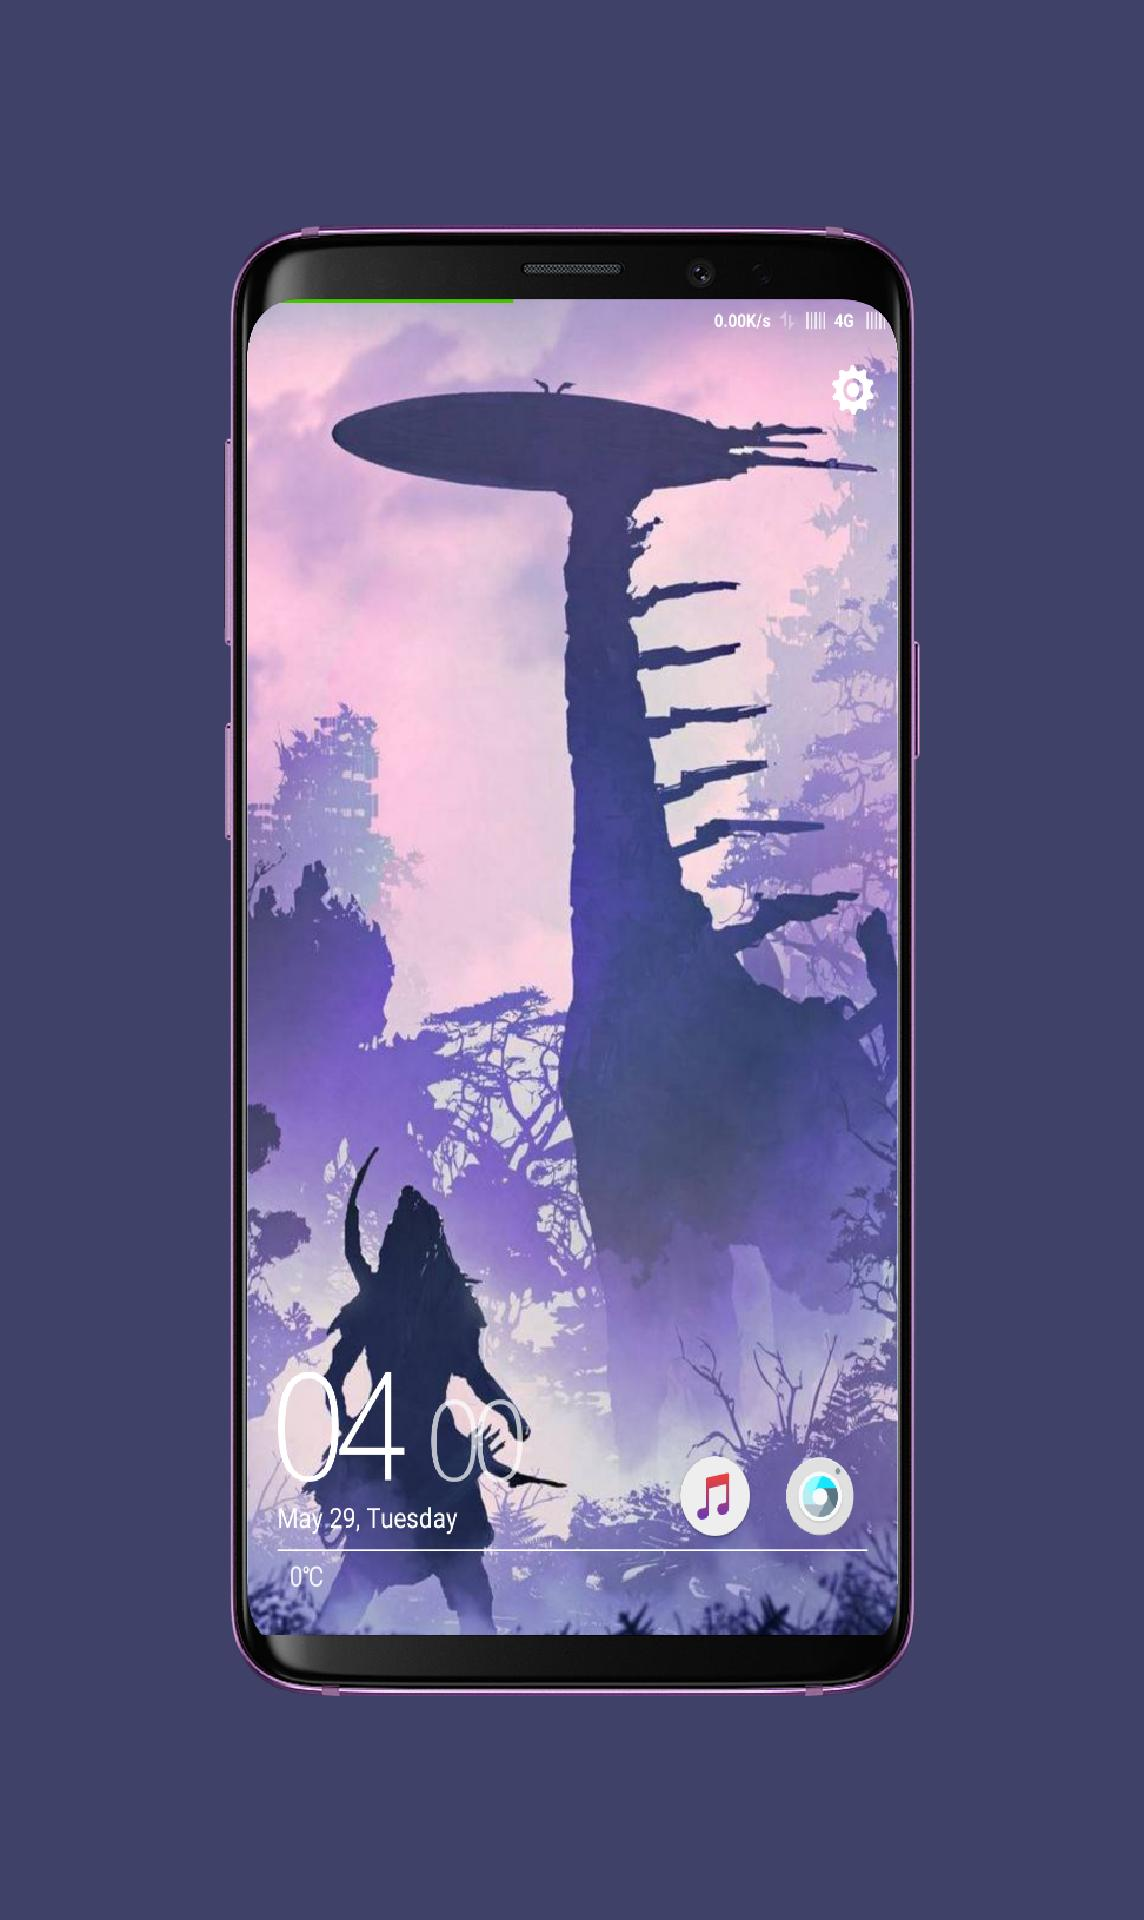 Horizon Zero Dawn Wallpapers For Android Apk Download